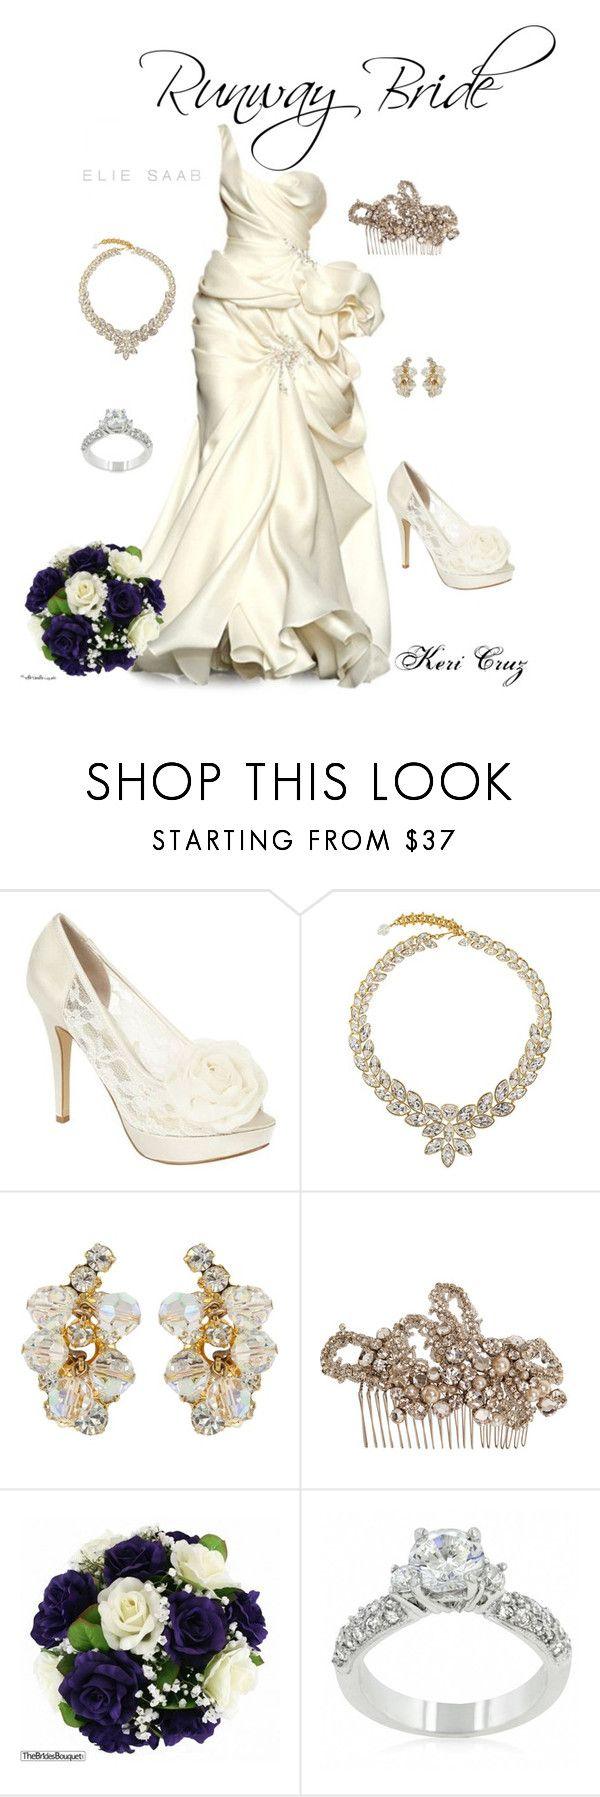 """Runway Bride"" by keri-cruz ❤ liked on Polyvore featuring Debut, Susan Caplan Vintage, Elie Saab, Temperley London and Fantasy Jewelry Box"